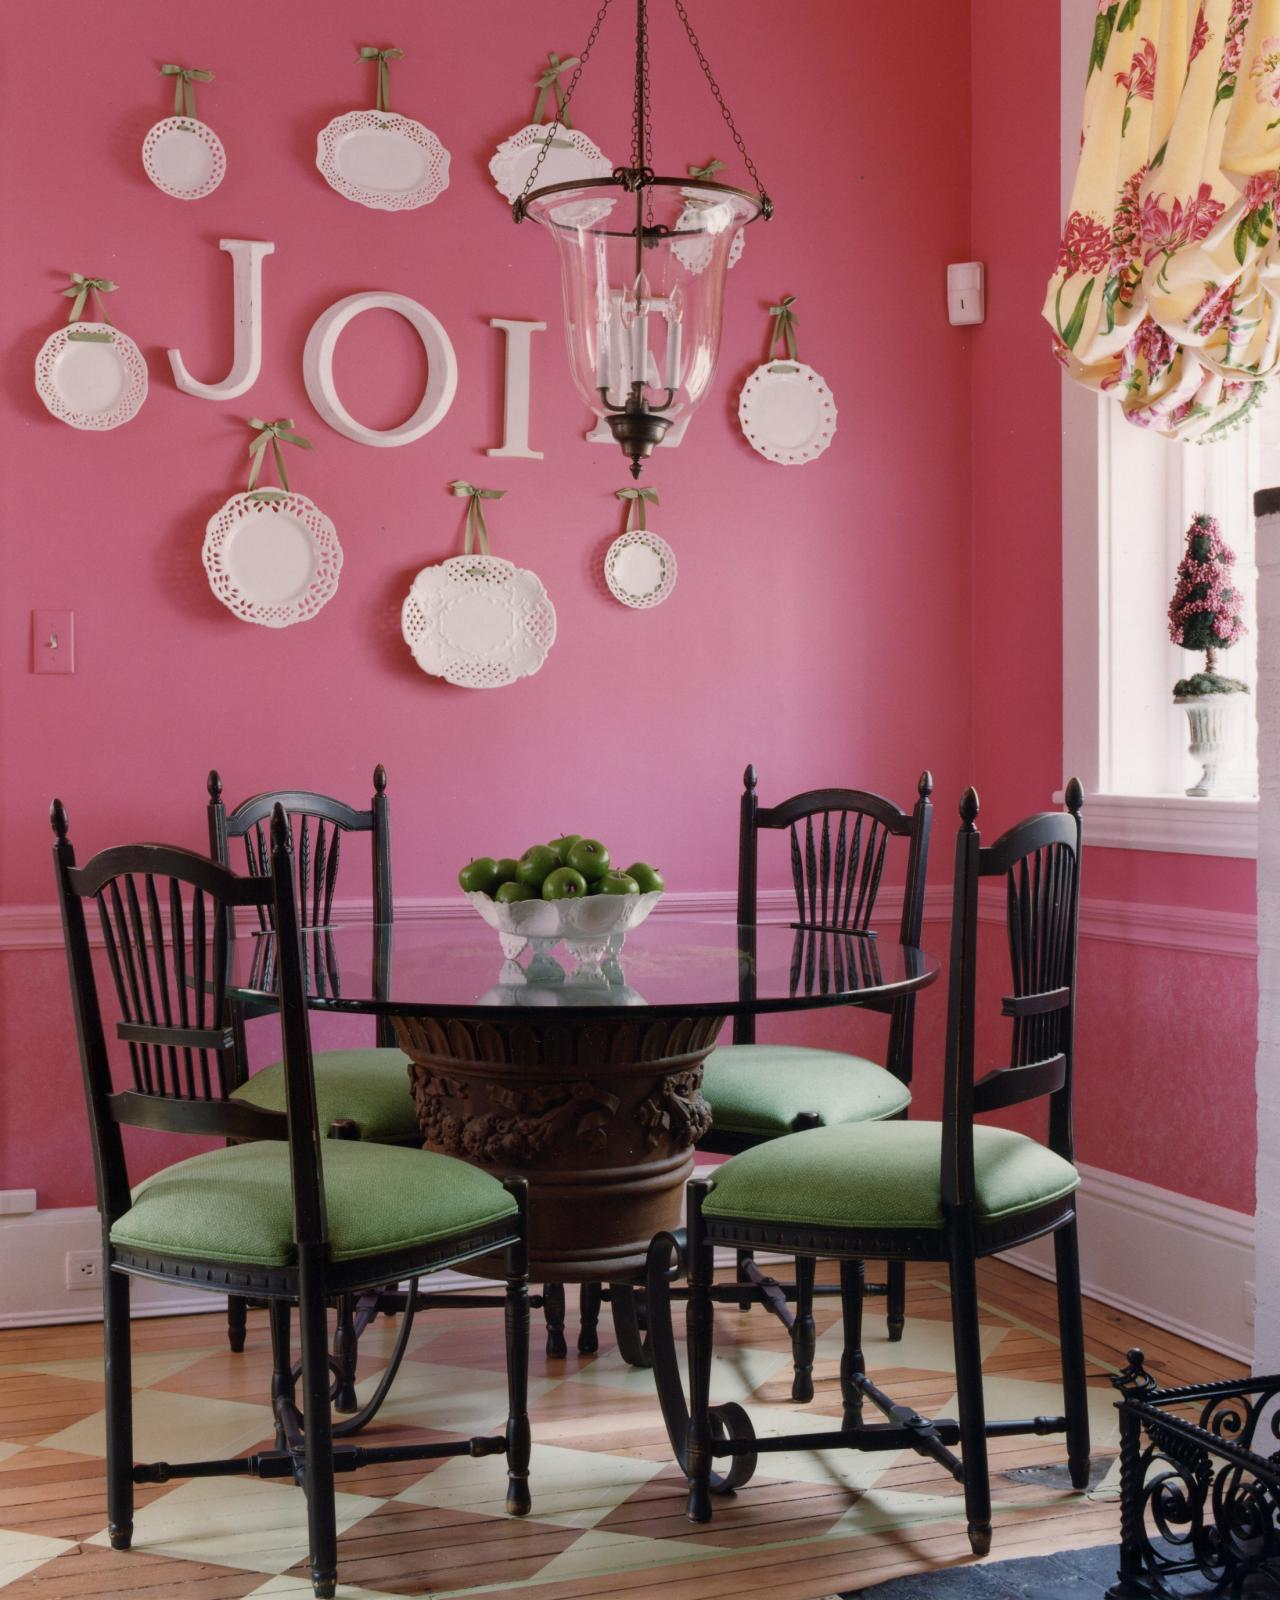 How To Choose A Color Scheme 8 Tips To Get Started Diy